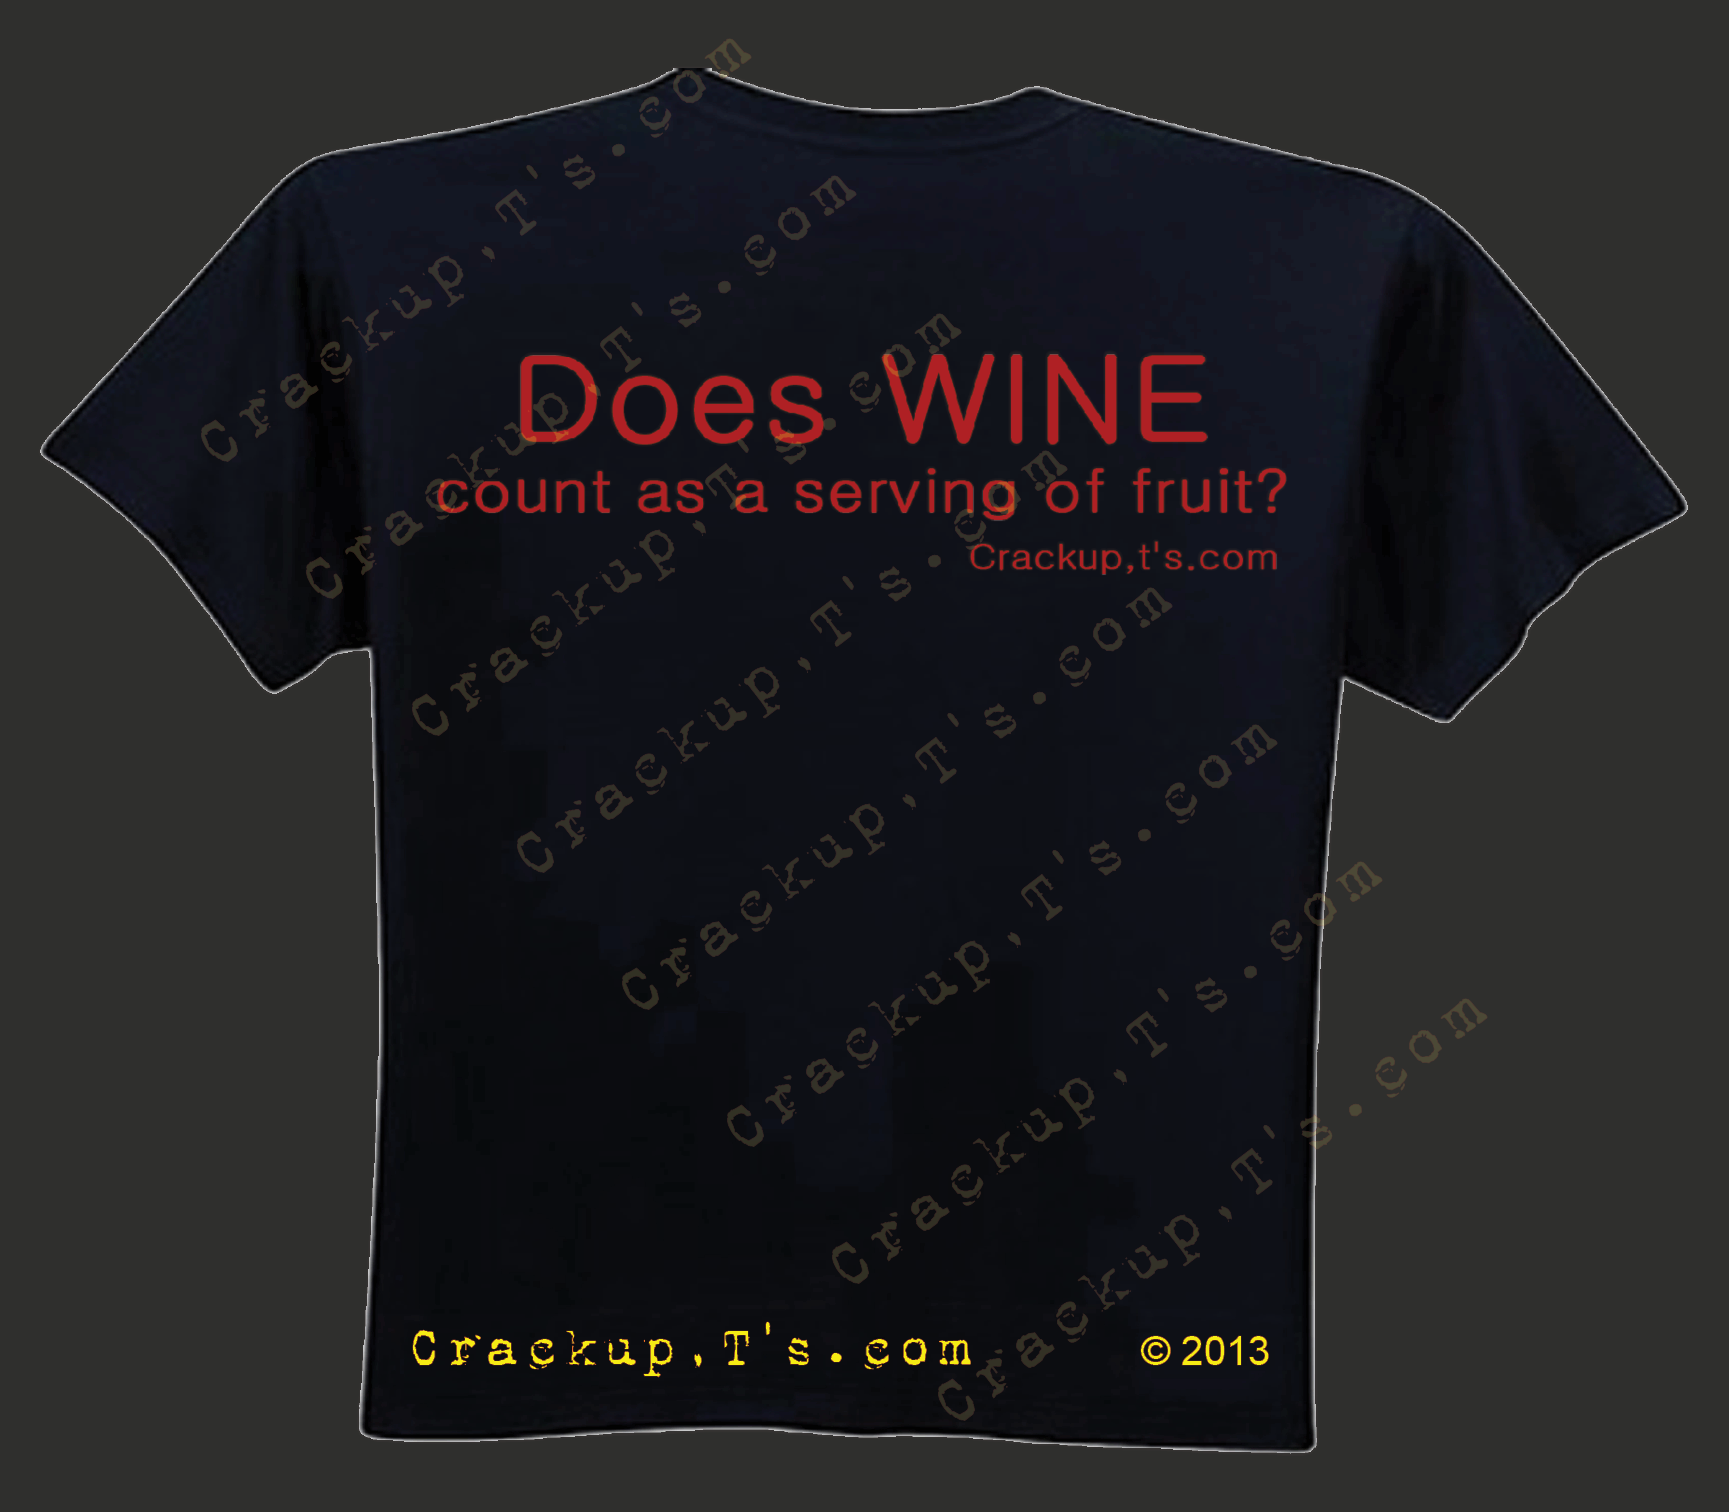 Does WINE Count as a Serving of Fruit    Crackup,T's.com | www.crackupts.com